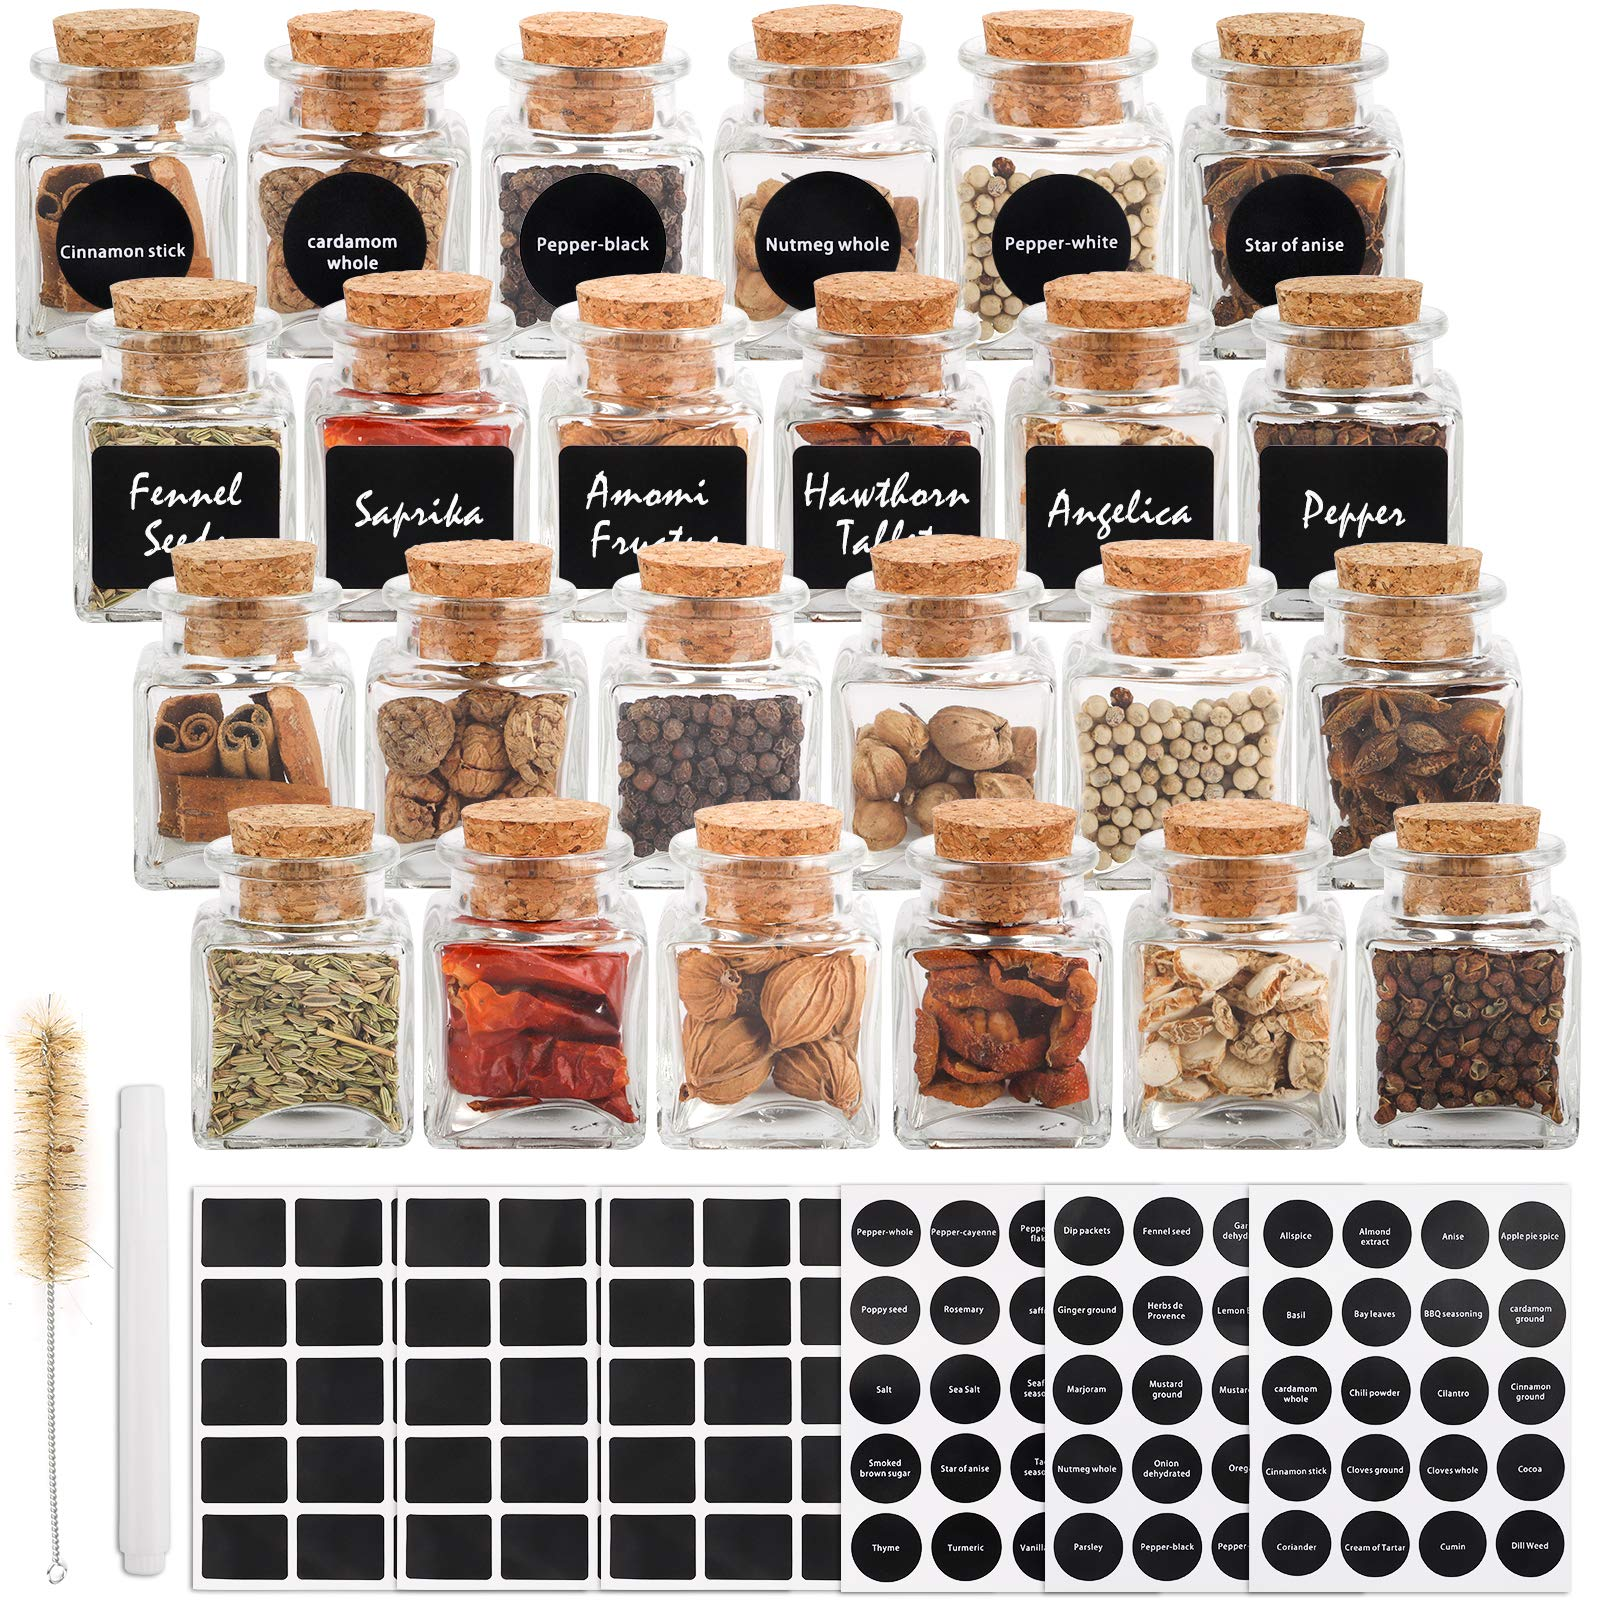 CUCUMI 24pcs 60ml Glass Spice Jars, 2oz Glass Spice Bottles Glass Containers with Cork, 120pcs Waterproof Preprinted Stickers , Chalk Marker, Test Tube Brush for Storing Tea Herbs and Spices